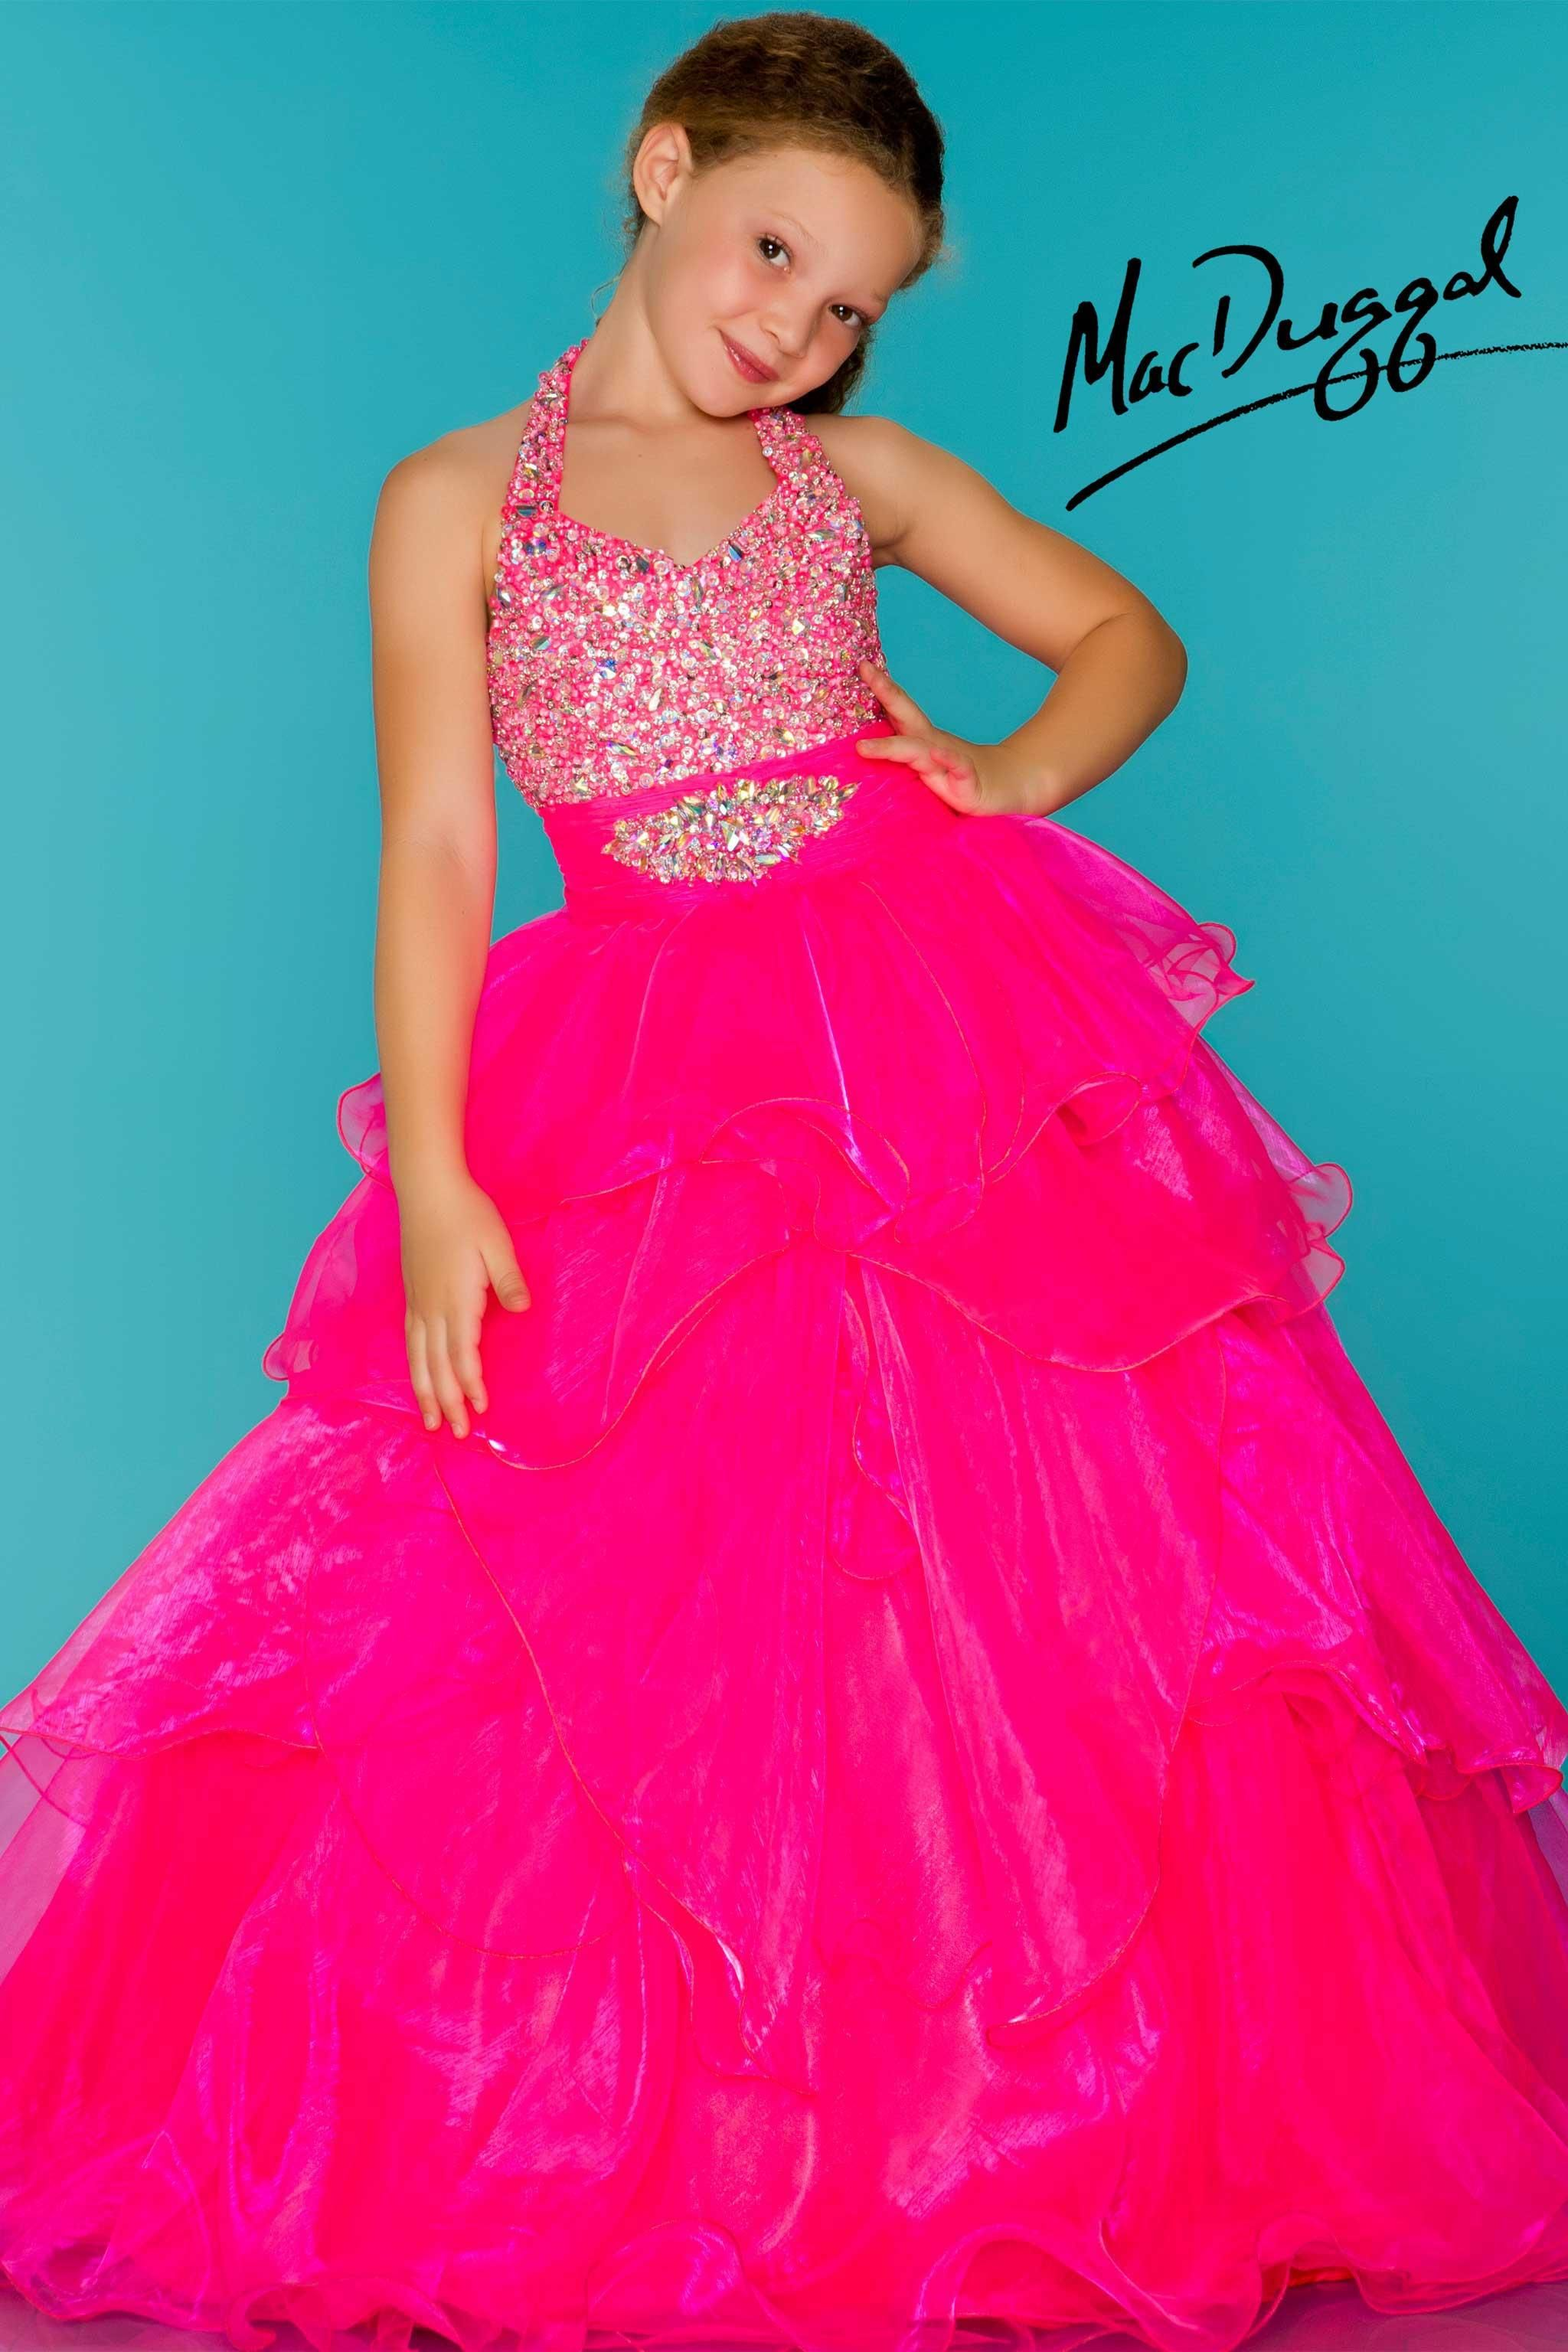 Neon Pink Little Girls Pageant Dress | Glitz and Glam | Pinterest